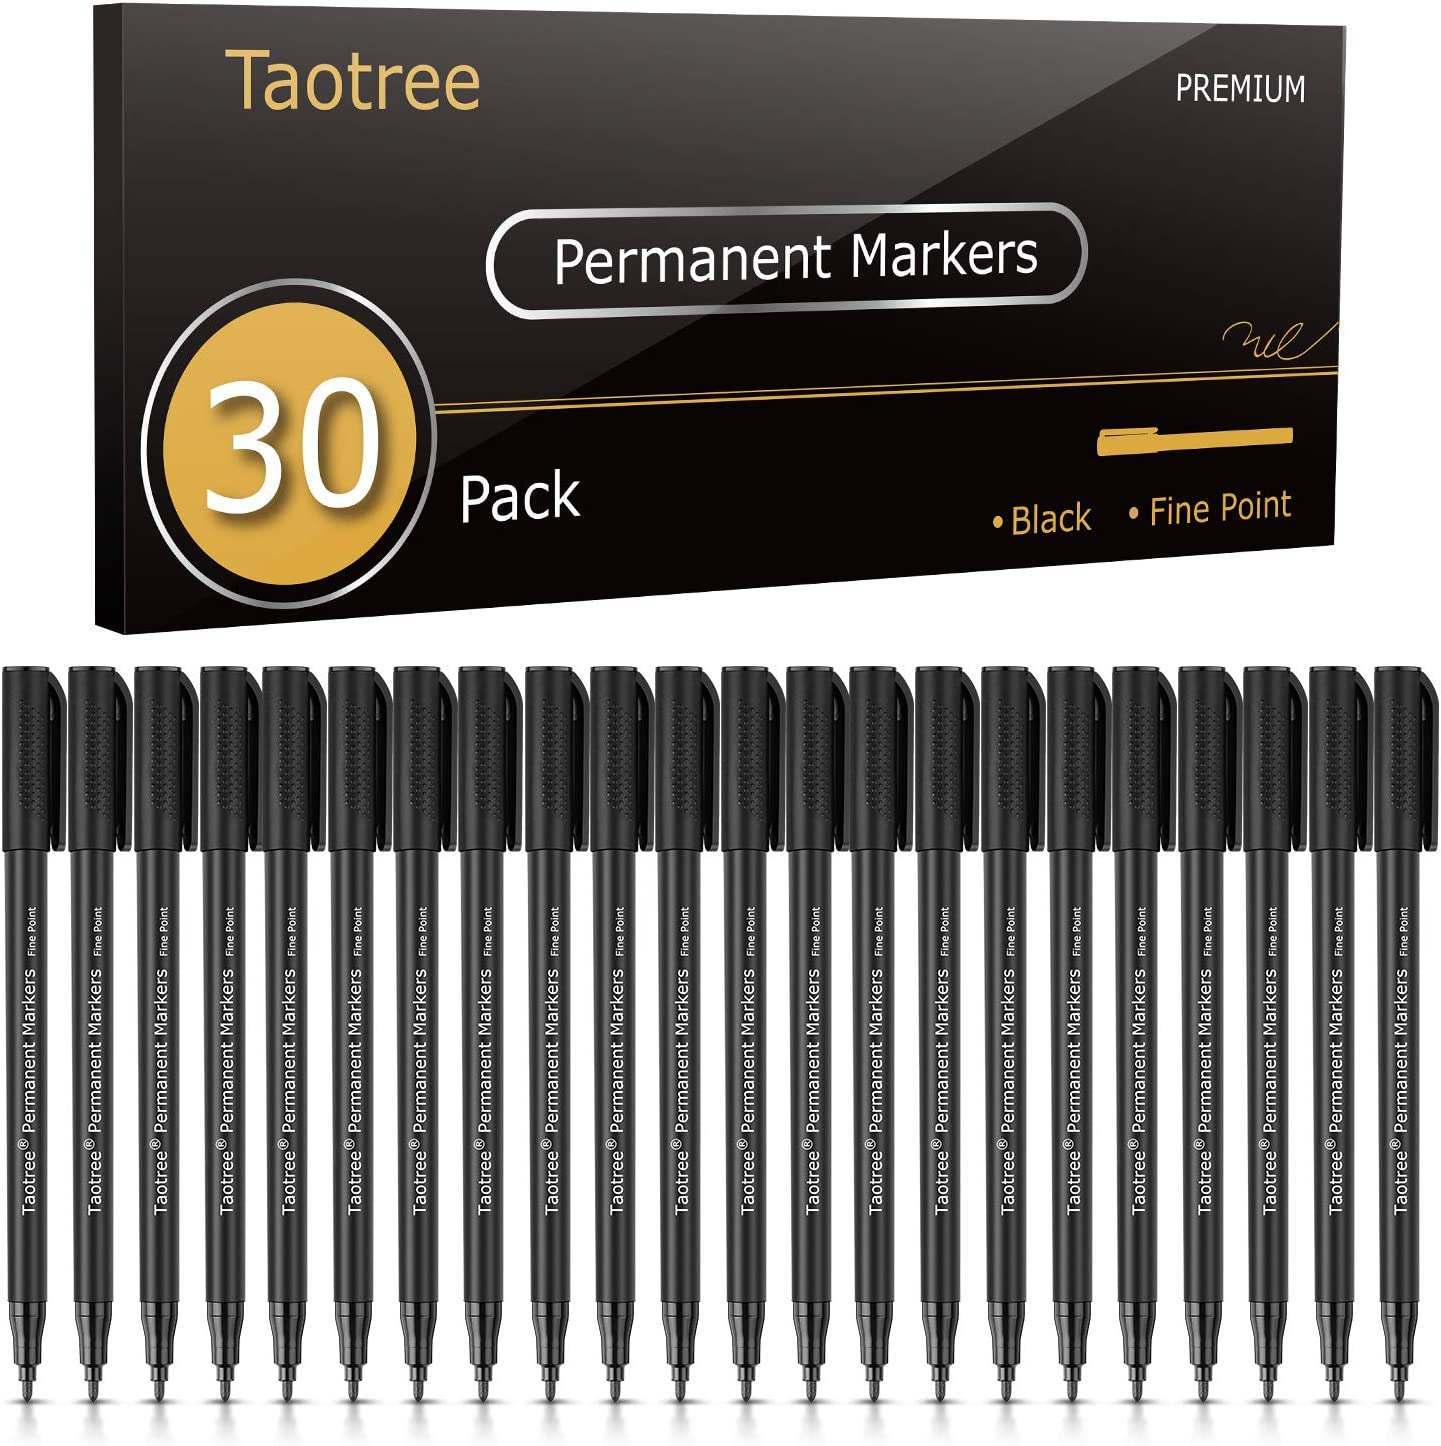 Permanent Markers, Taotree 30 Pack Black Permanent Marker Pens set, Fine Point, for Writing Doodling Marking, Works on most surfaces: Paper, Plastic, Wood, Metal, Great for Art Crafts Scrapbooks